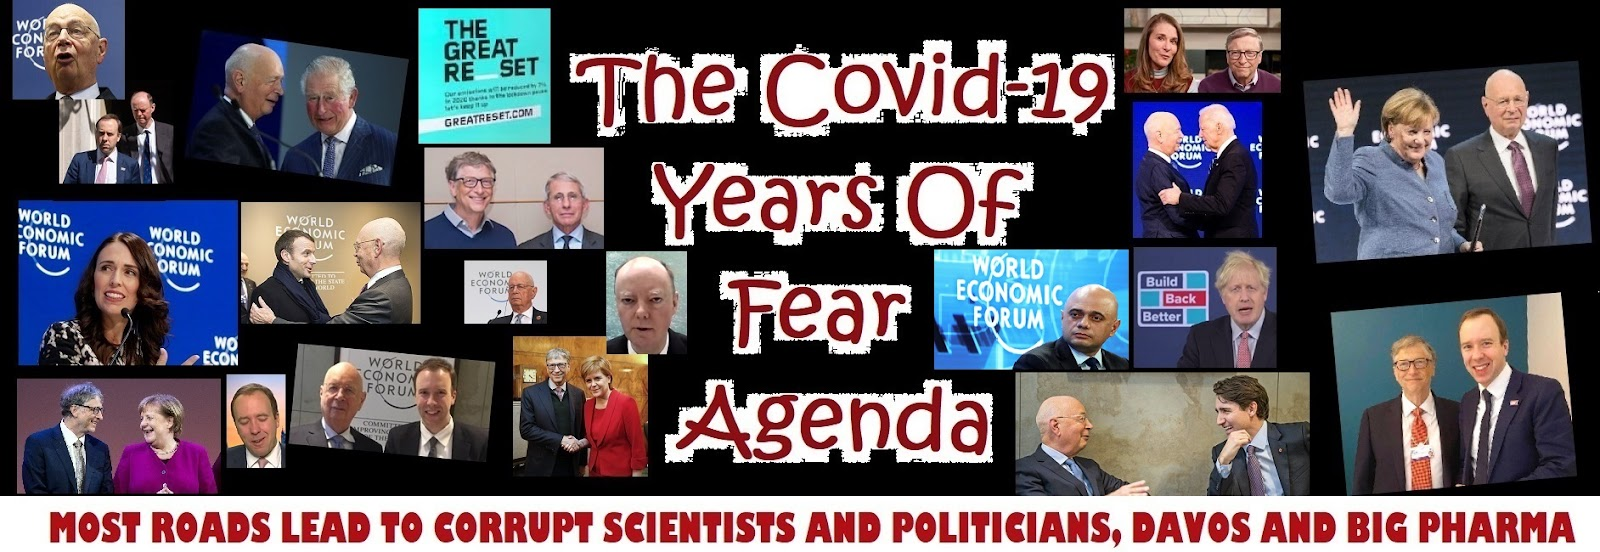 The Covid-19 Years of Fear Agenda